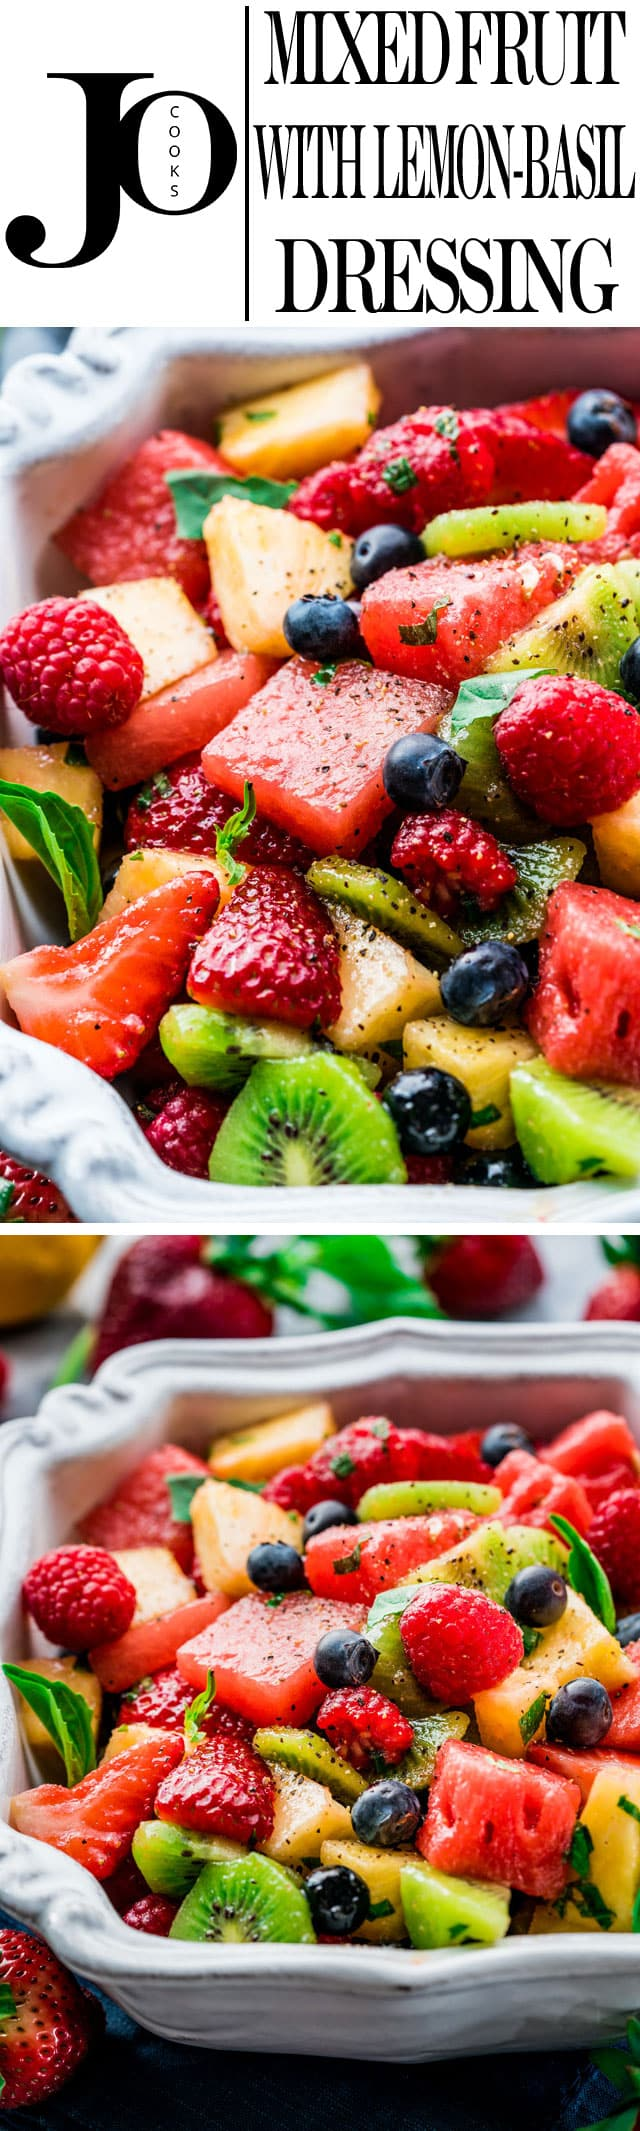 This Mixed Fruit with Lemon-Basil Dressing is super refreshing and delicious with an incredible savory dressing. Perfect for summer! www.jocooks.com #fruitsalad